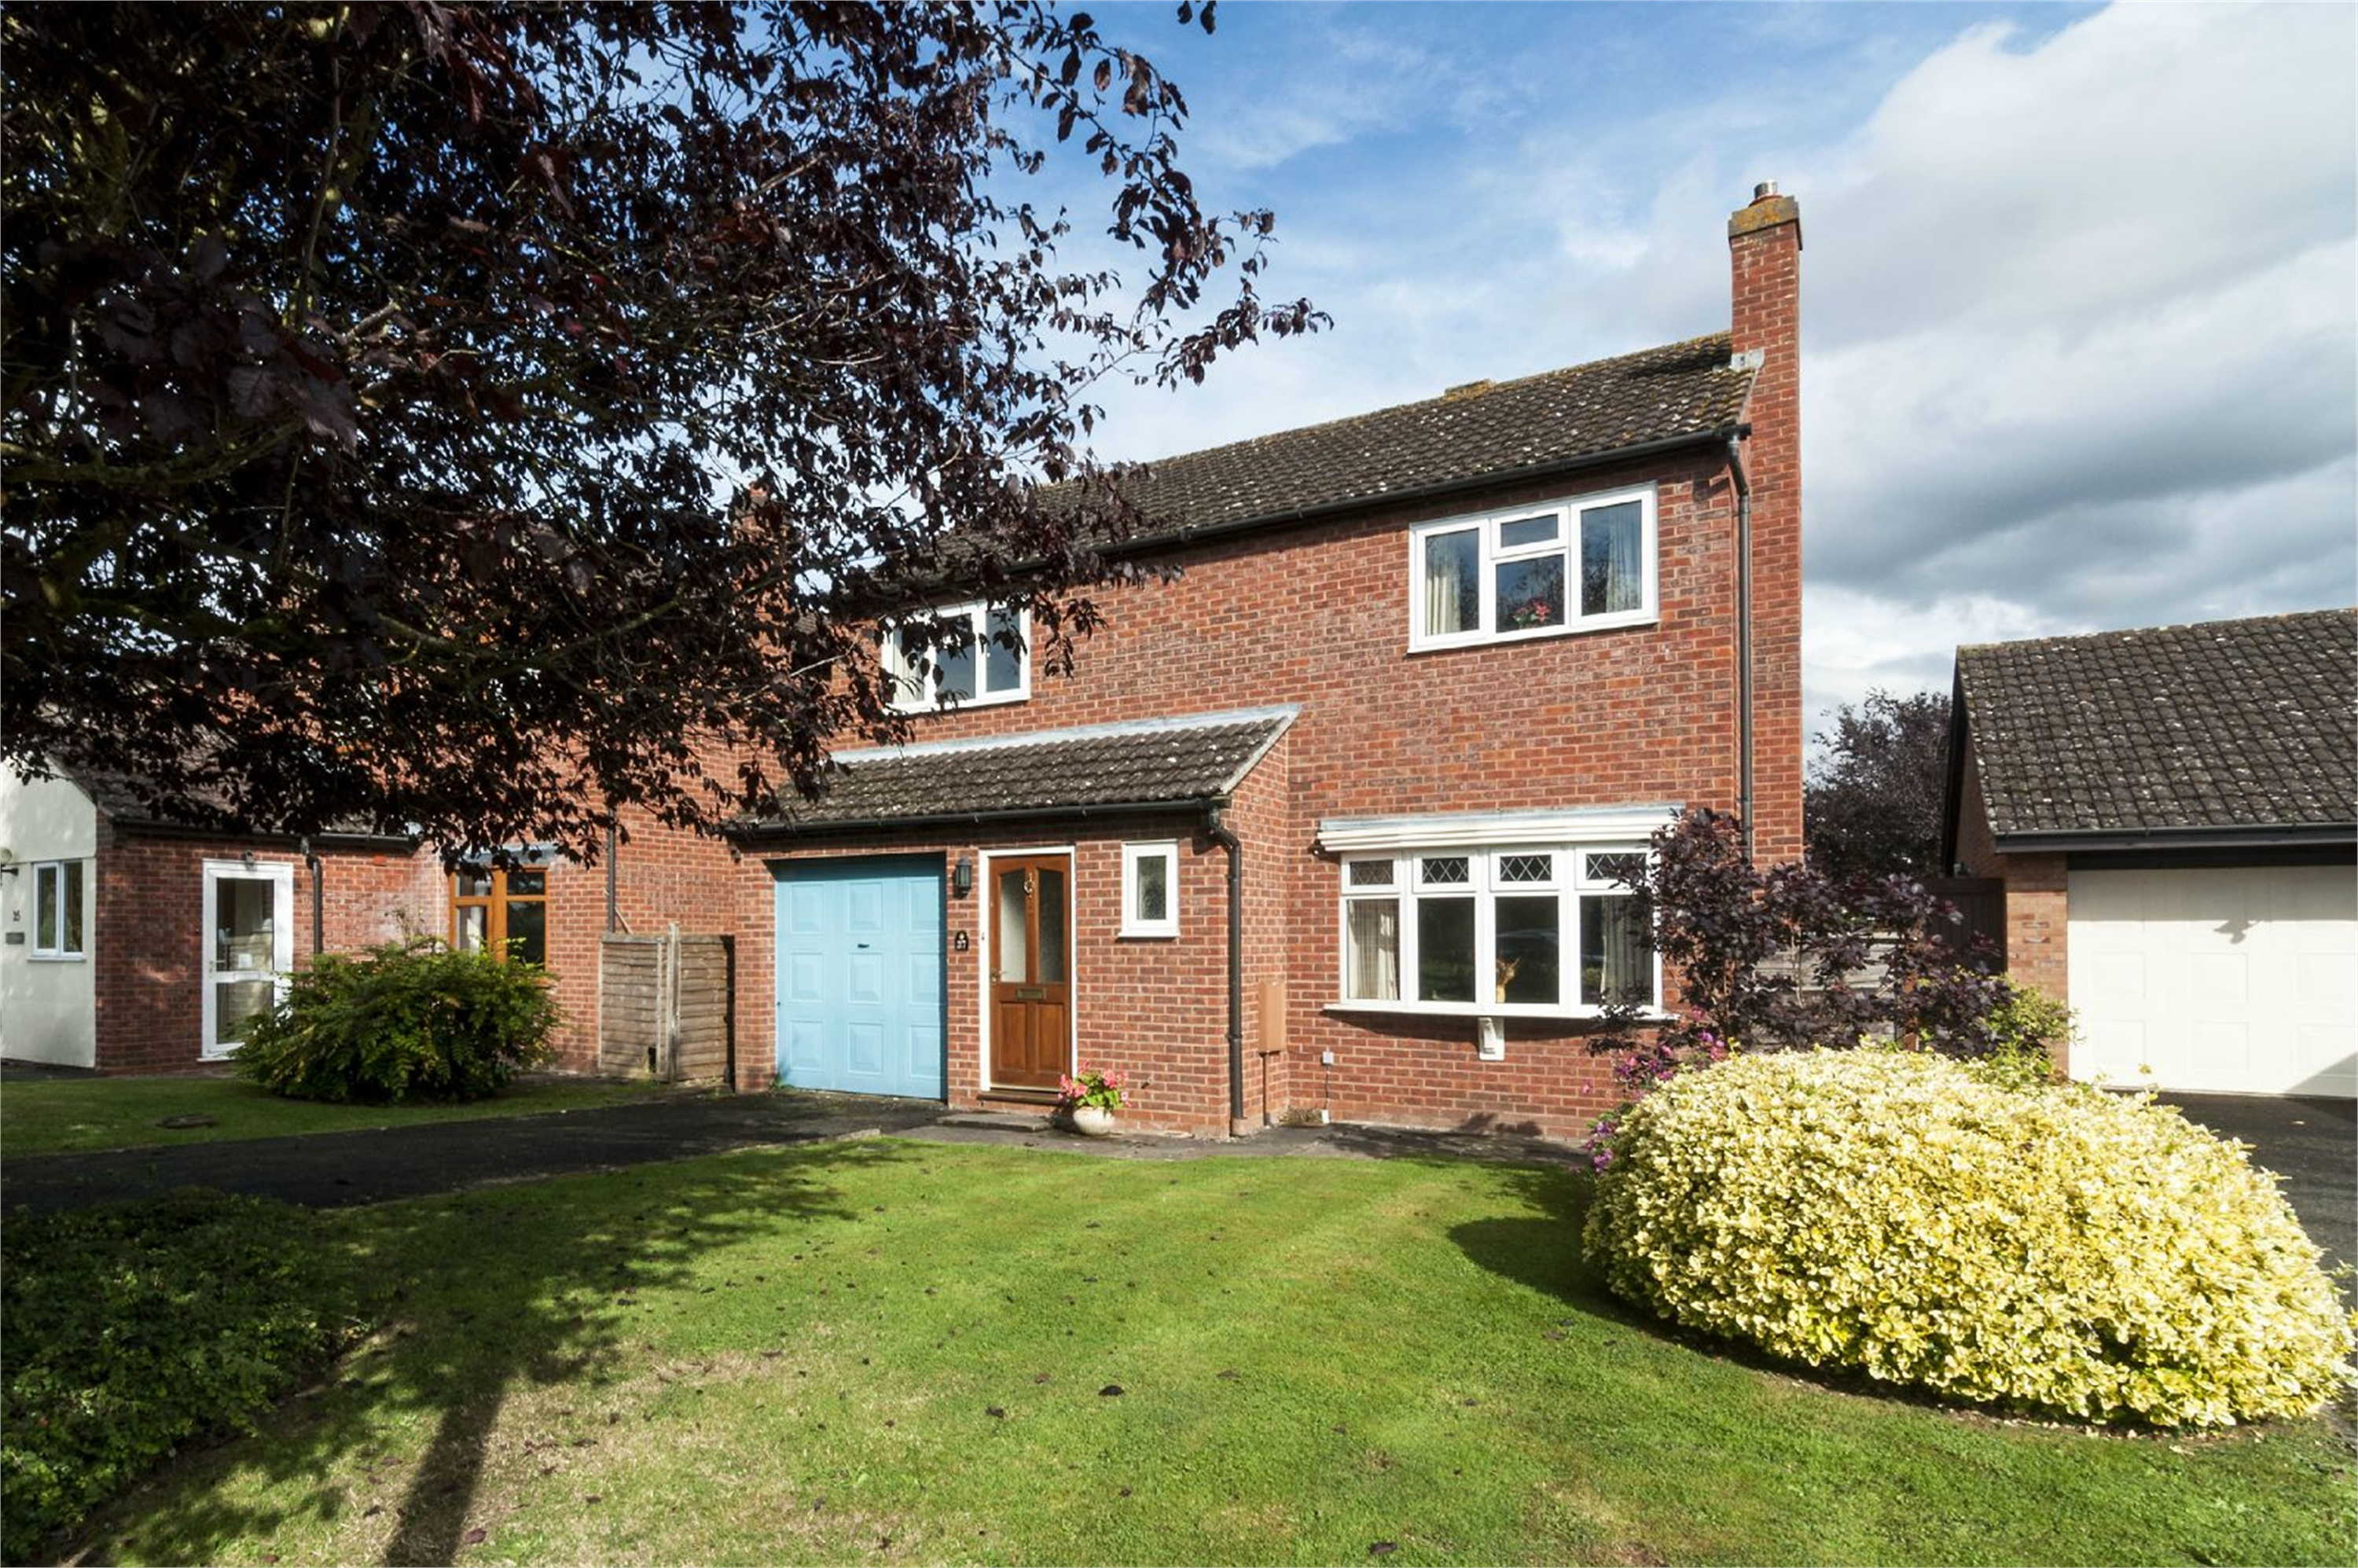 4 Bedrooms Detached House for sale in 37 Fishmore View, Ludlow, Shropshire, SY8